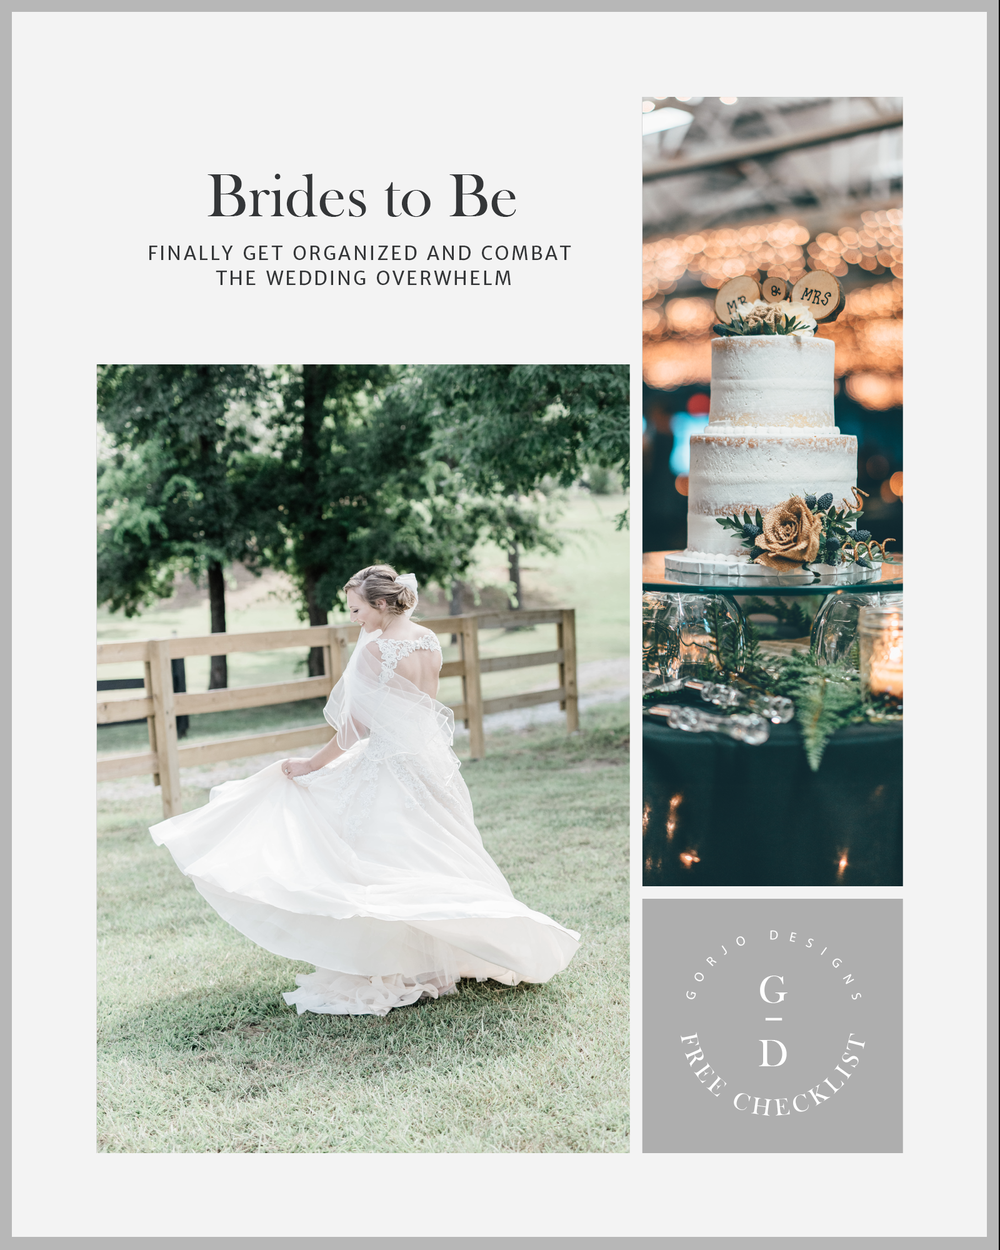 Photo collage of bride twirling and rustic wedding cake - Brides to be finally get organized and combat the wedding overwhelm